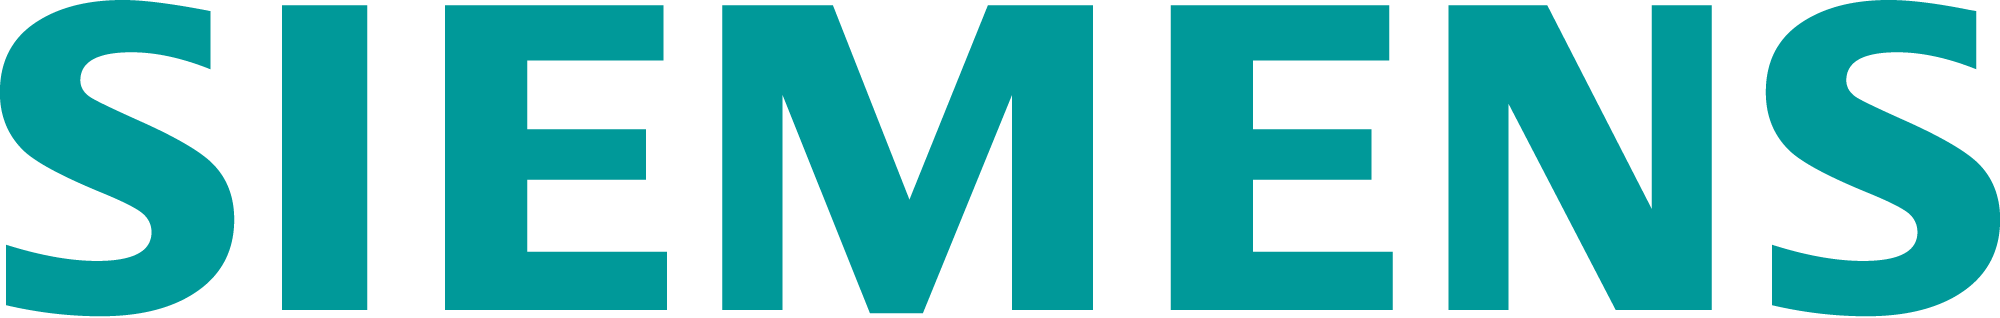 Logo of Siemens AG